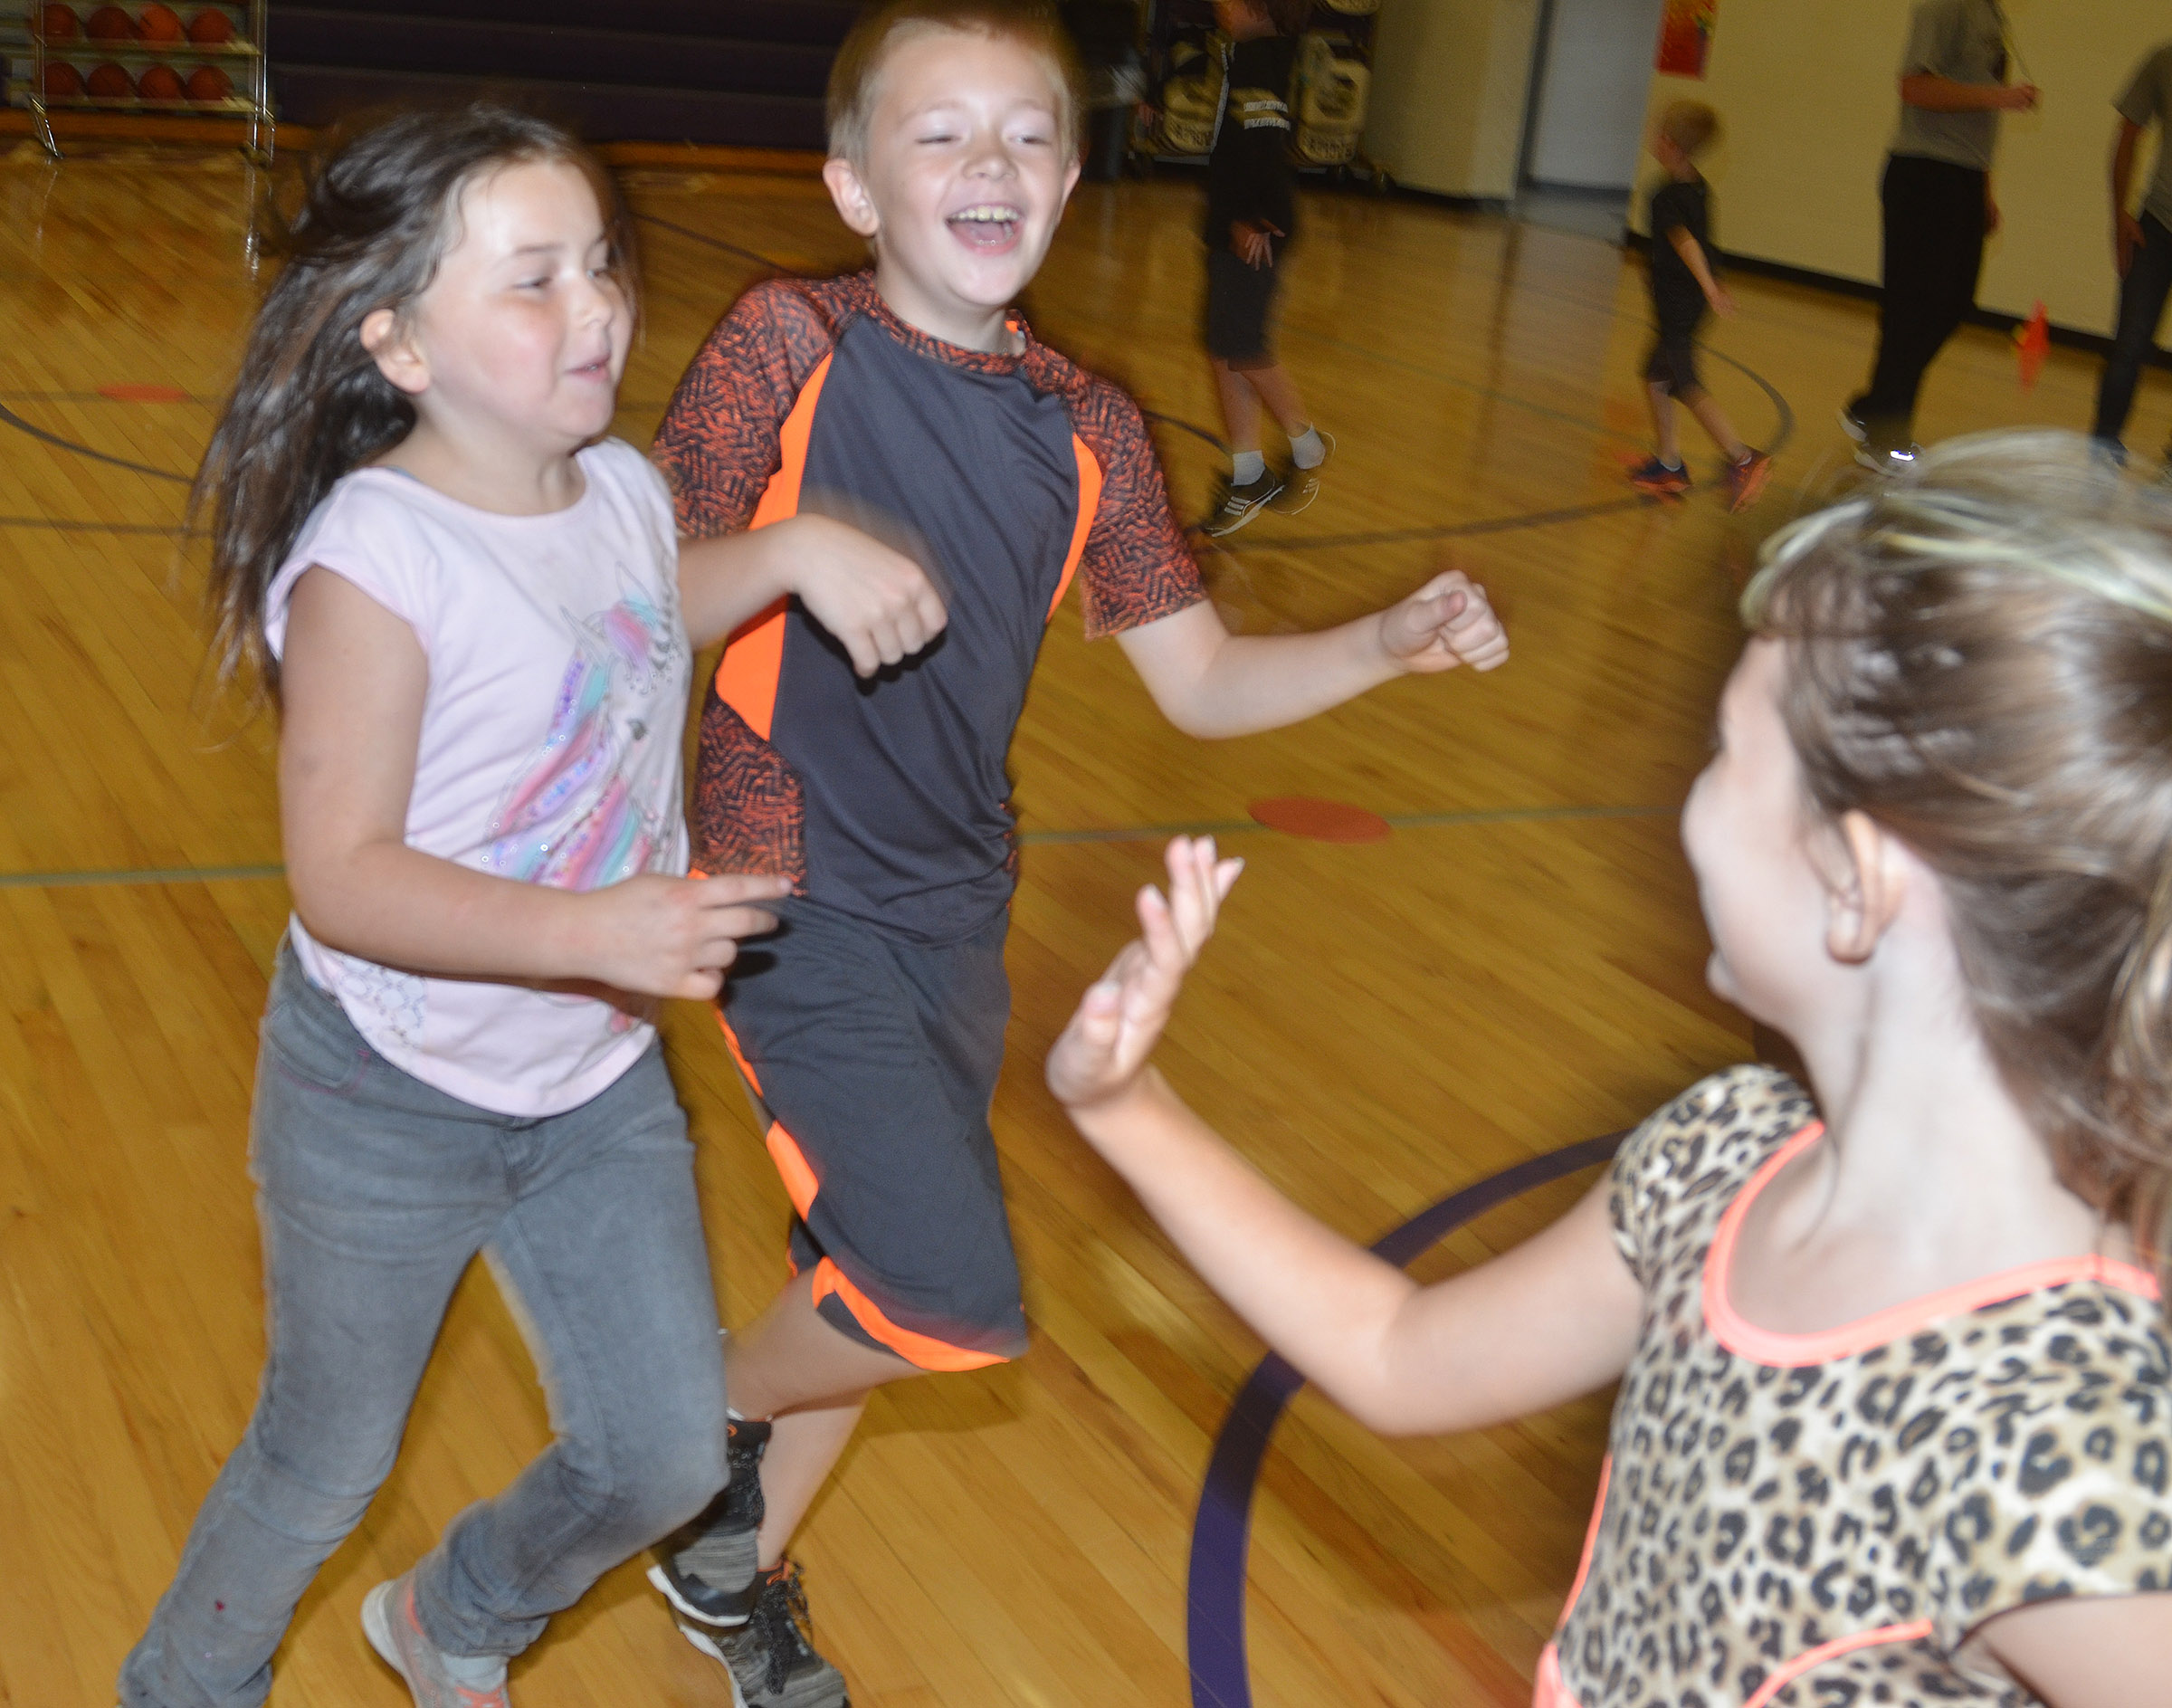 CES third-graders Kendall Cruz, at left, and Alijah Henderson run with their classmates.